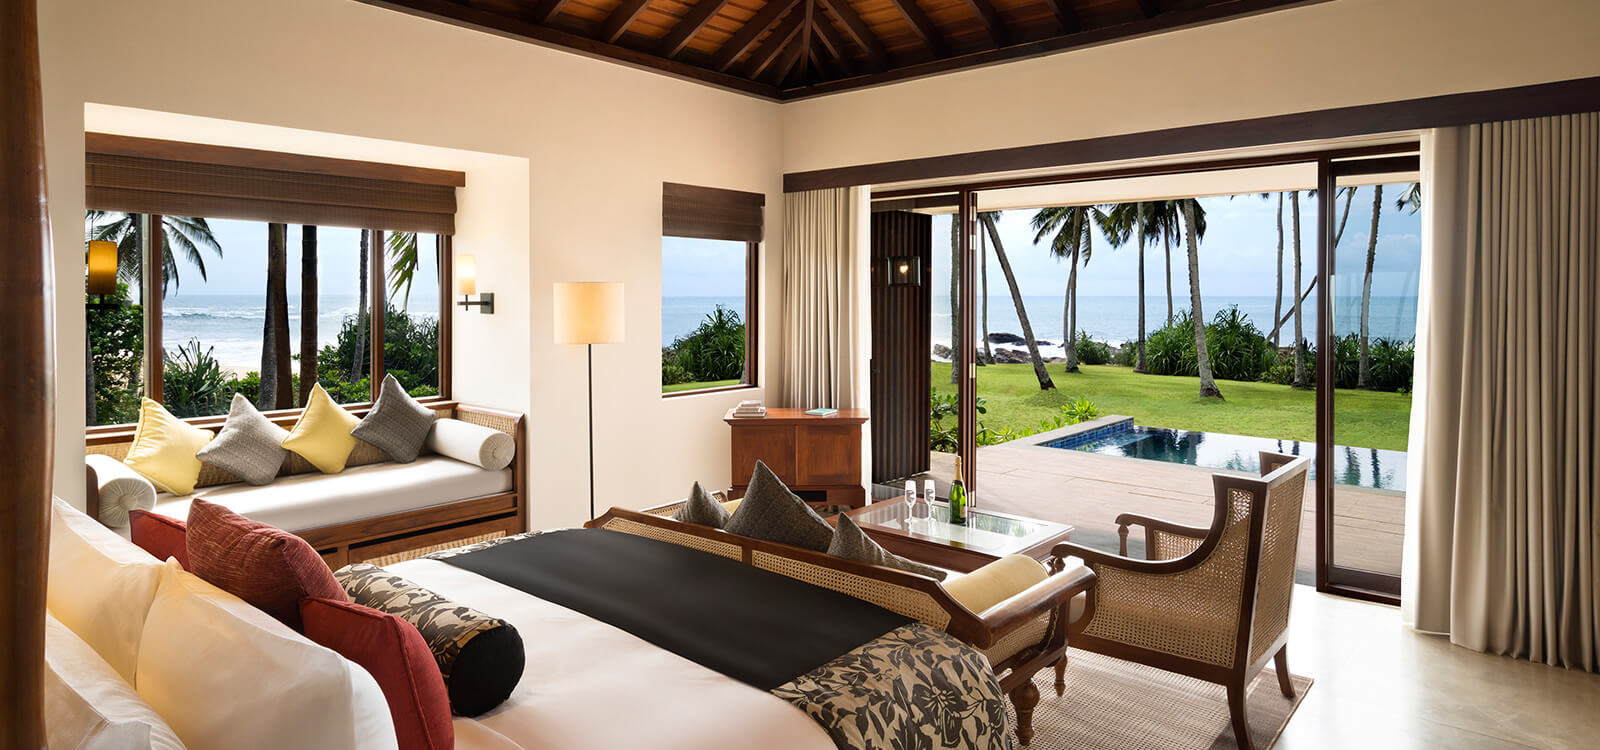 Anantara Resorts, Sri Lanka